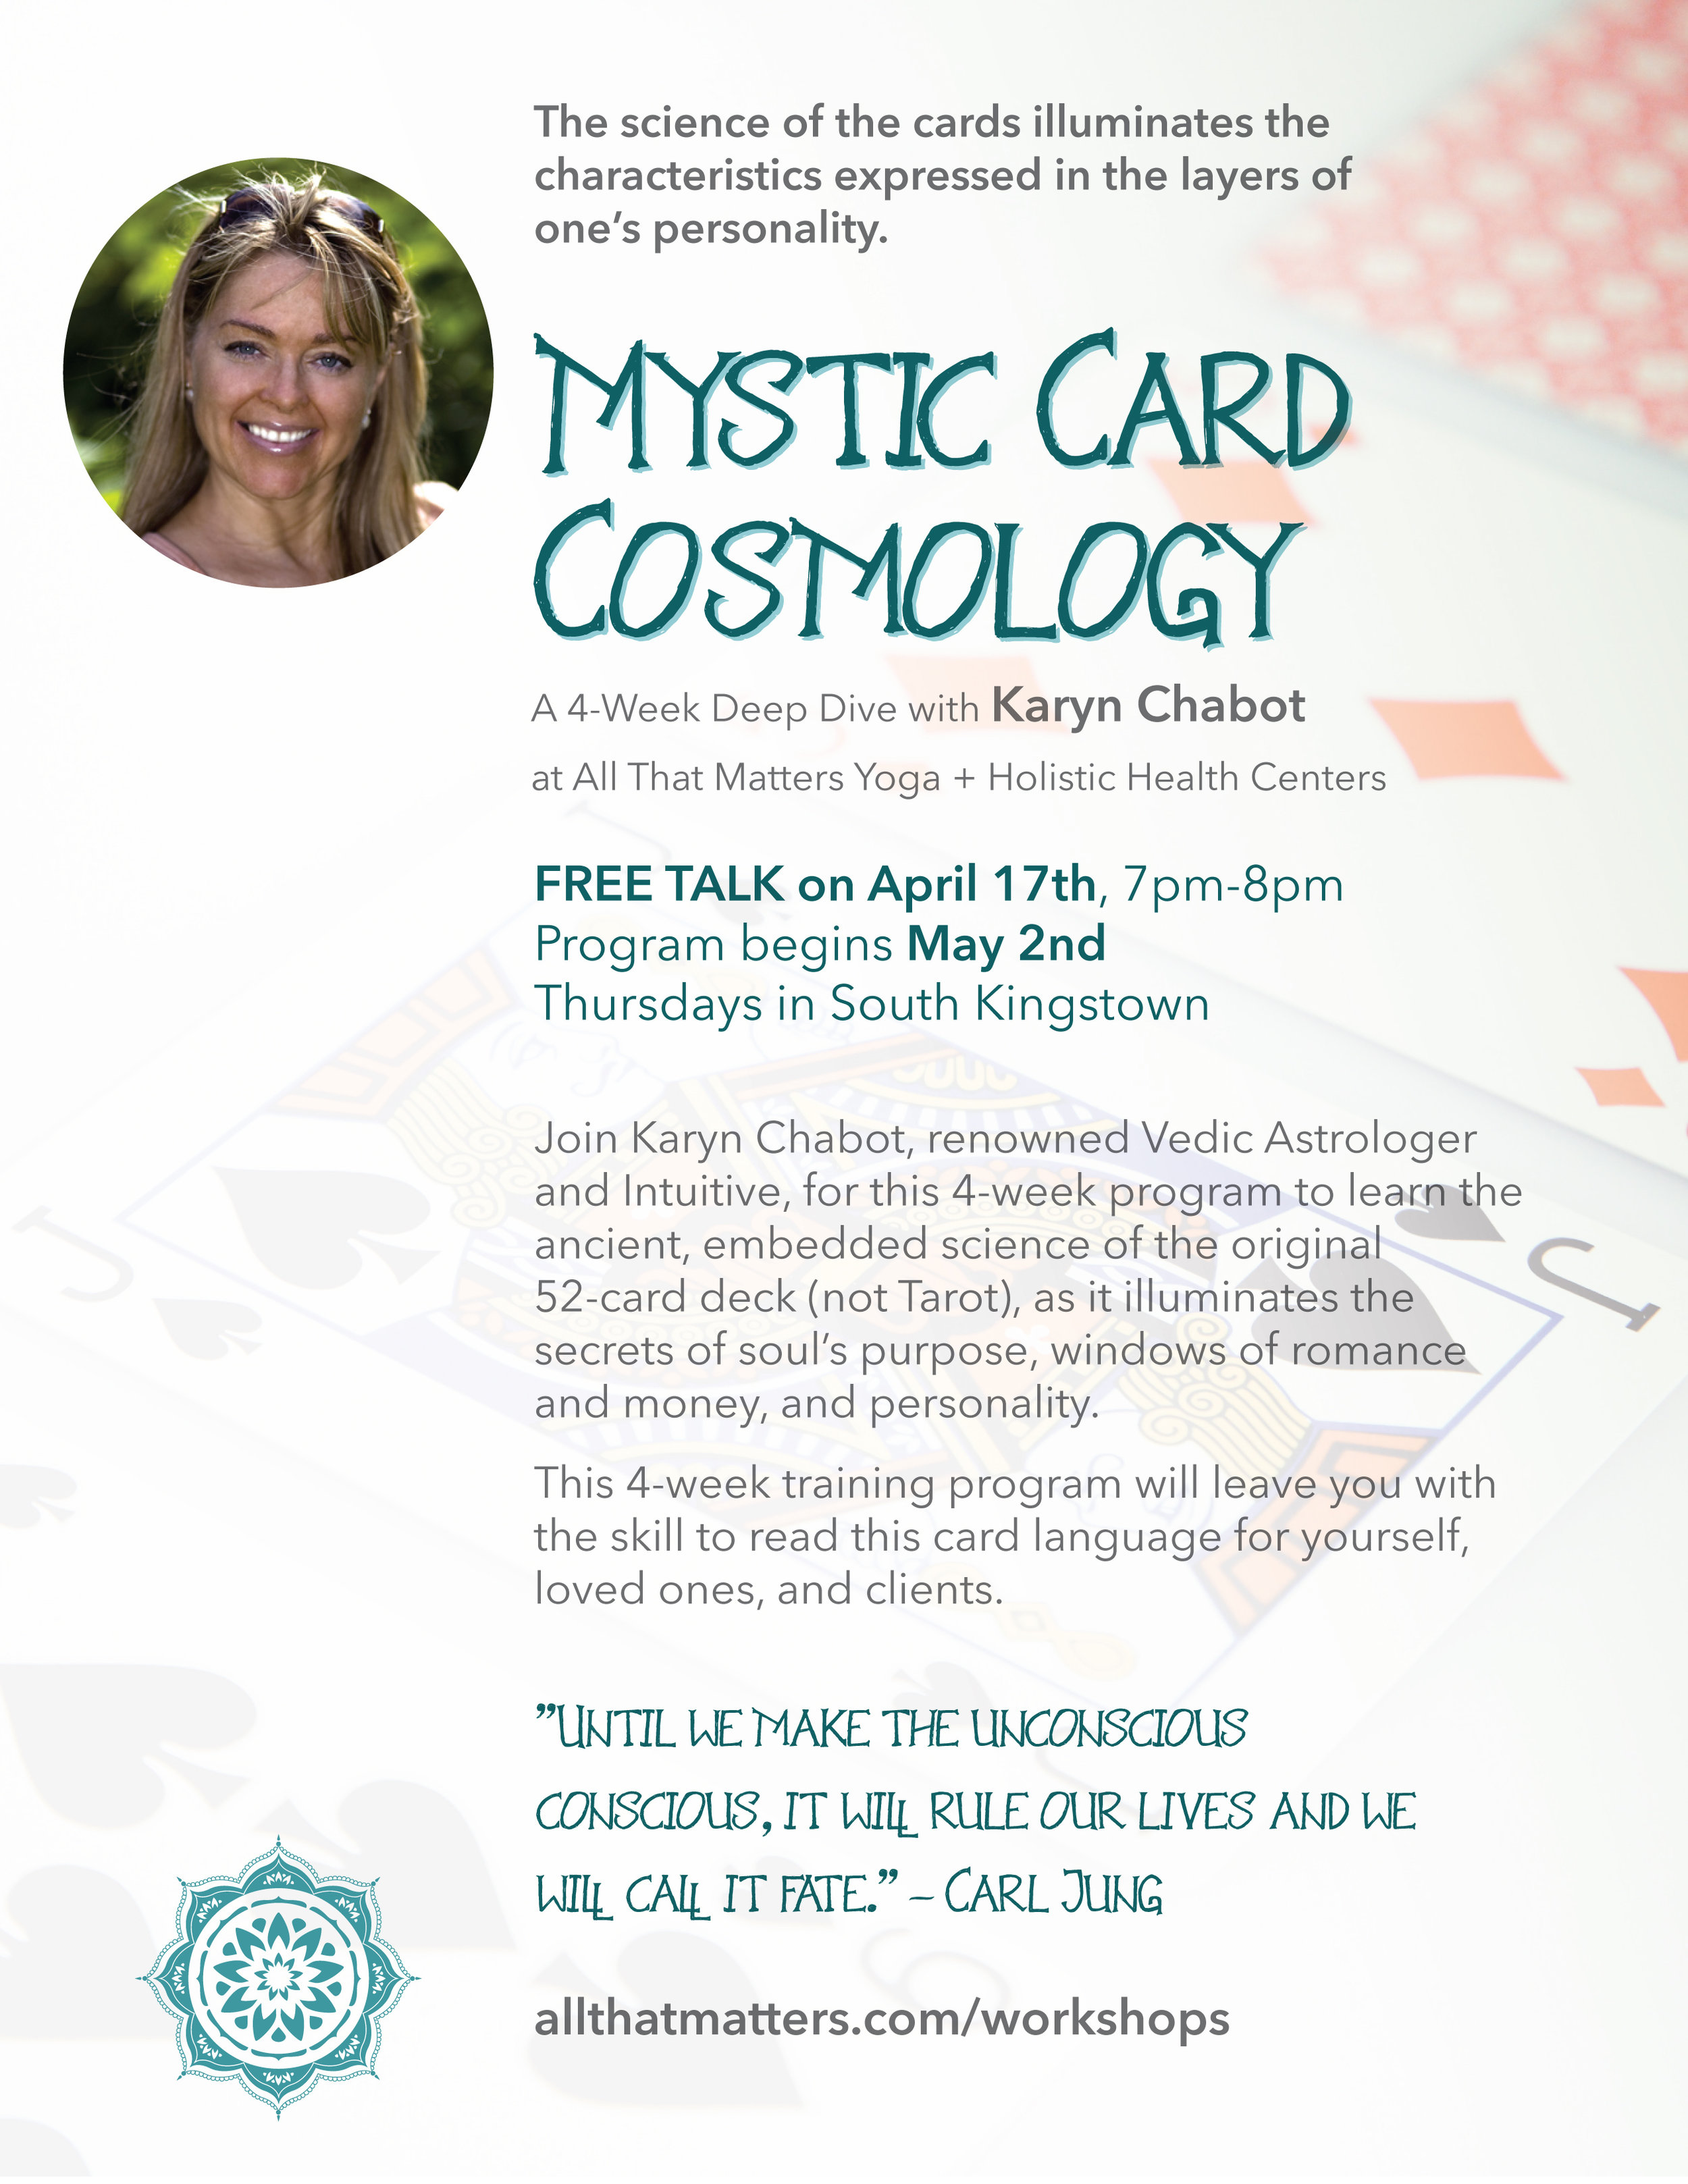 Jyotish Vedic Astrology & Card Cosmology Readings, Classes and Webinars